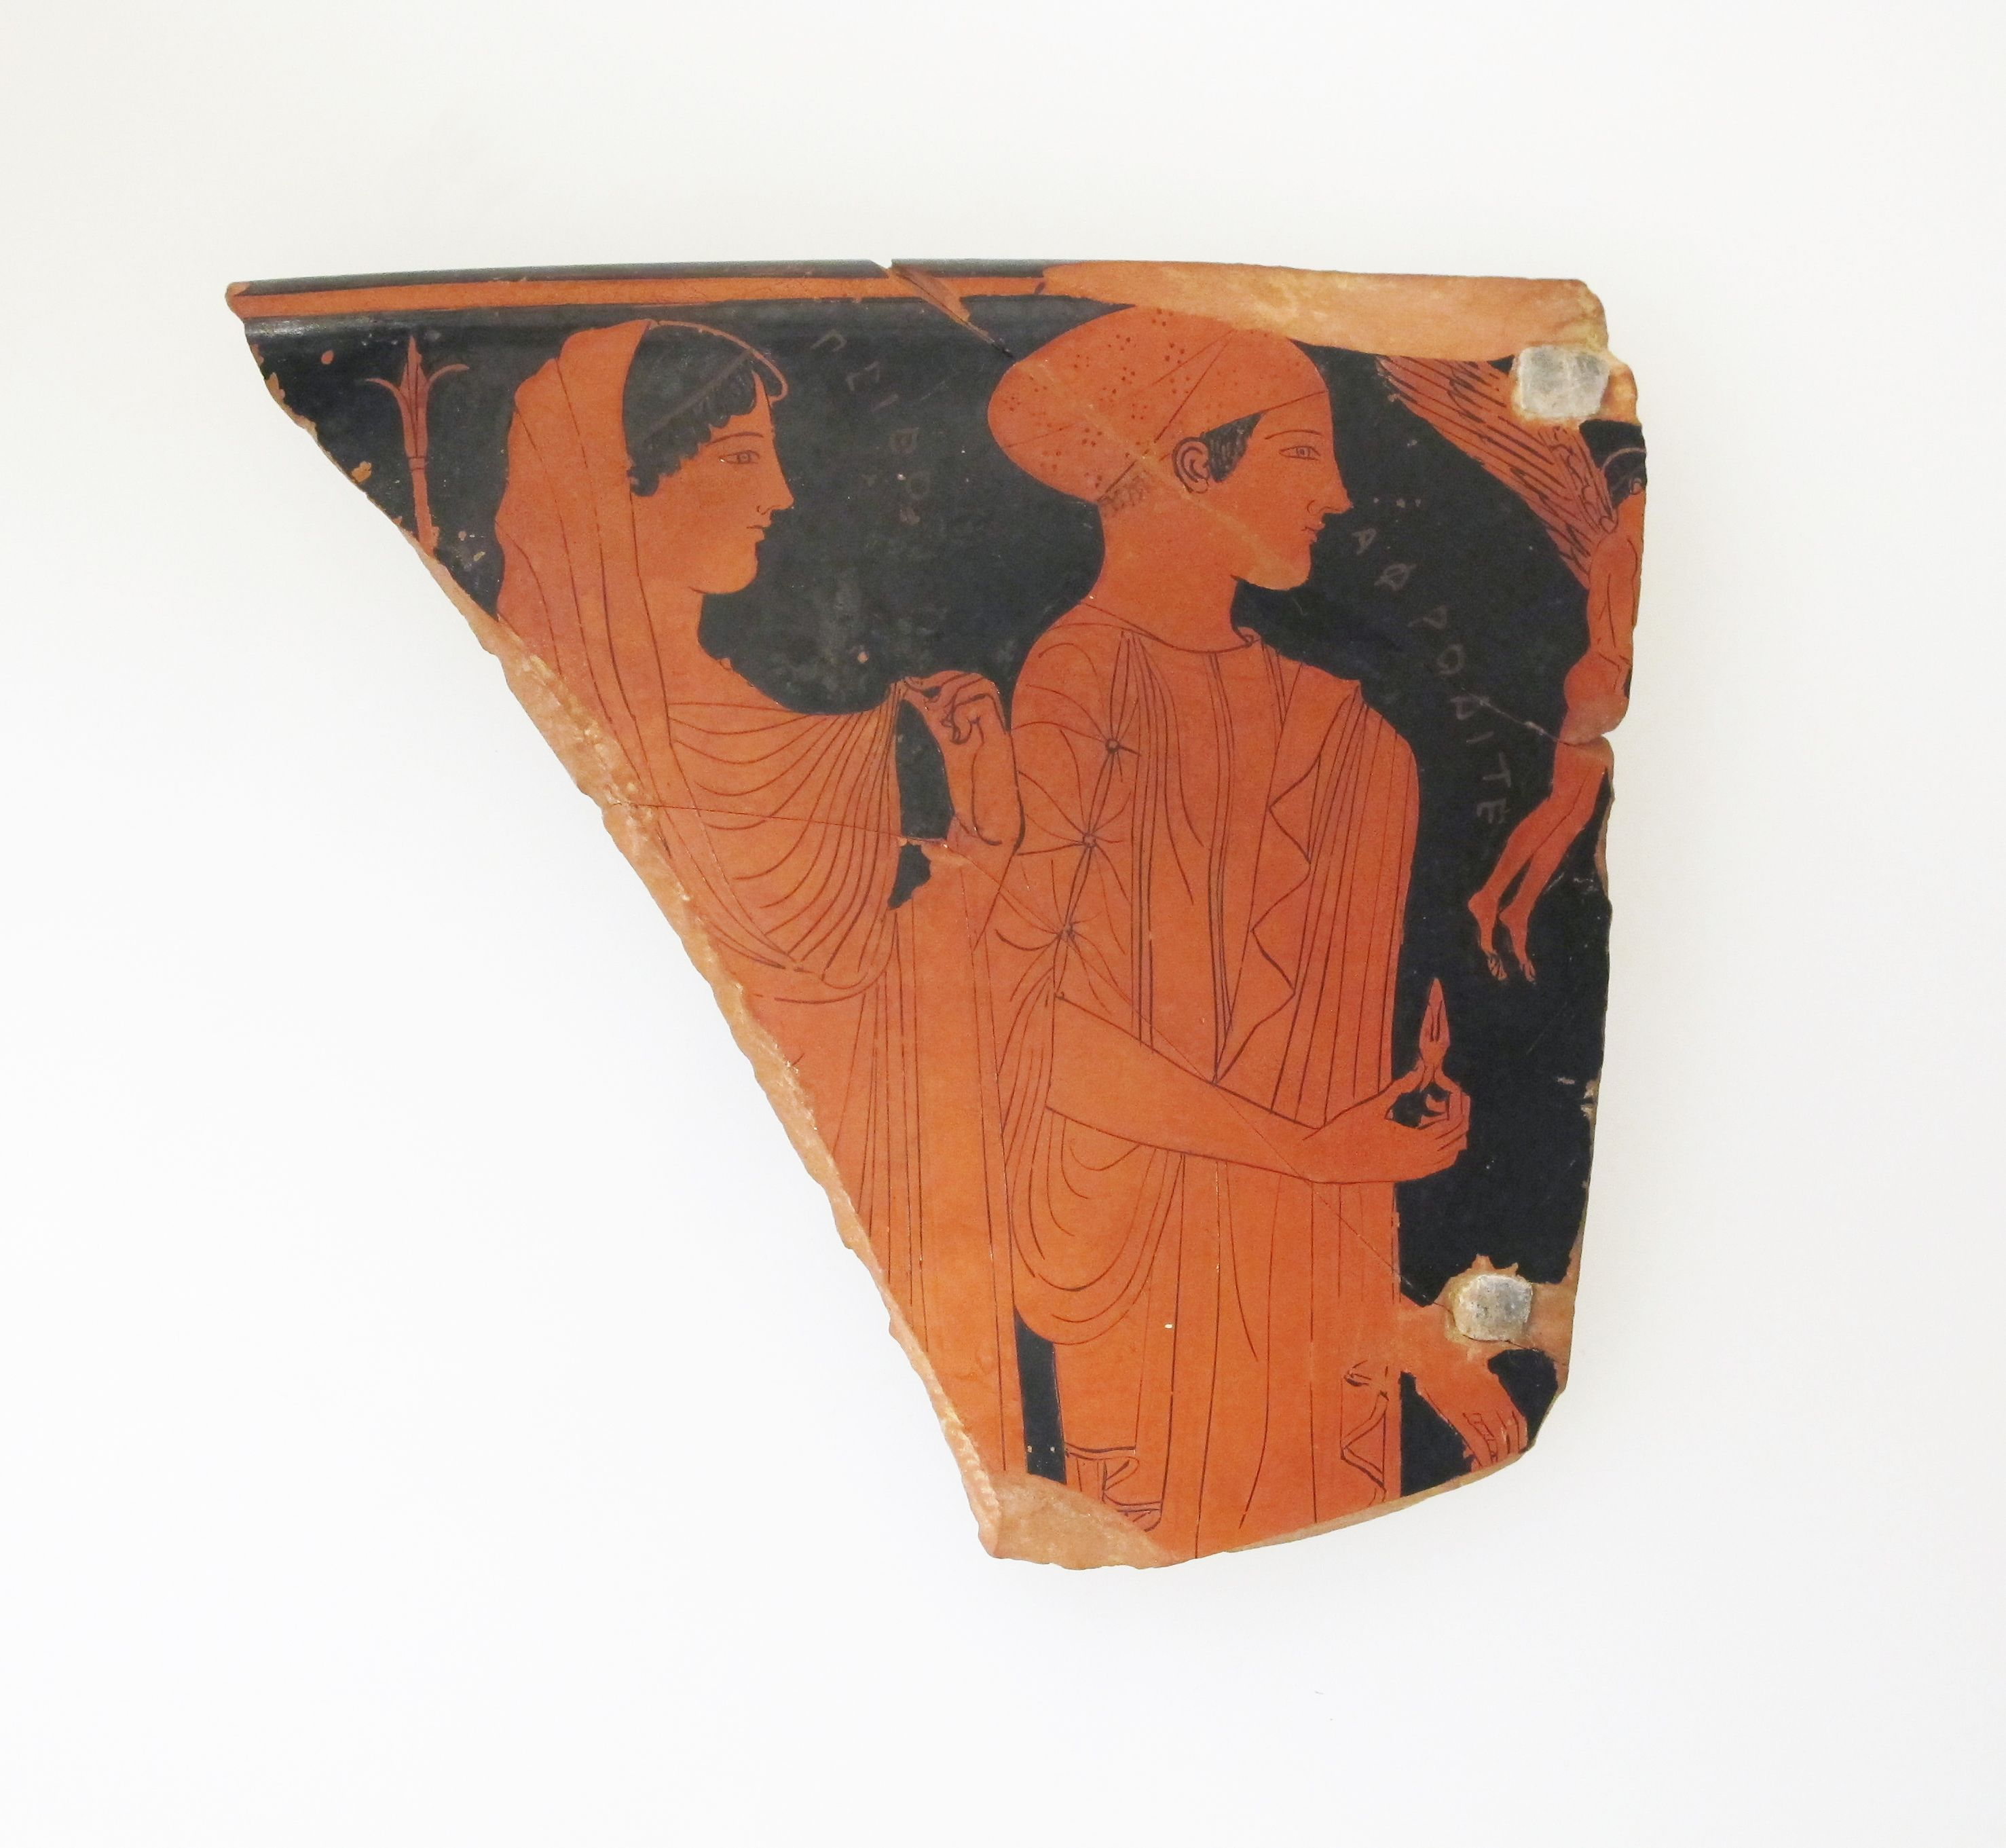 Fragment Of A Terracotta Skyphos (Deep Drinking Cup), Archaic Greece